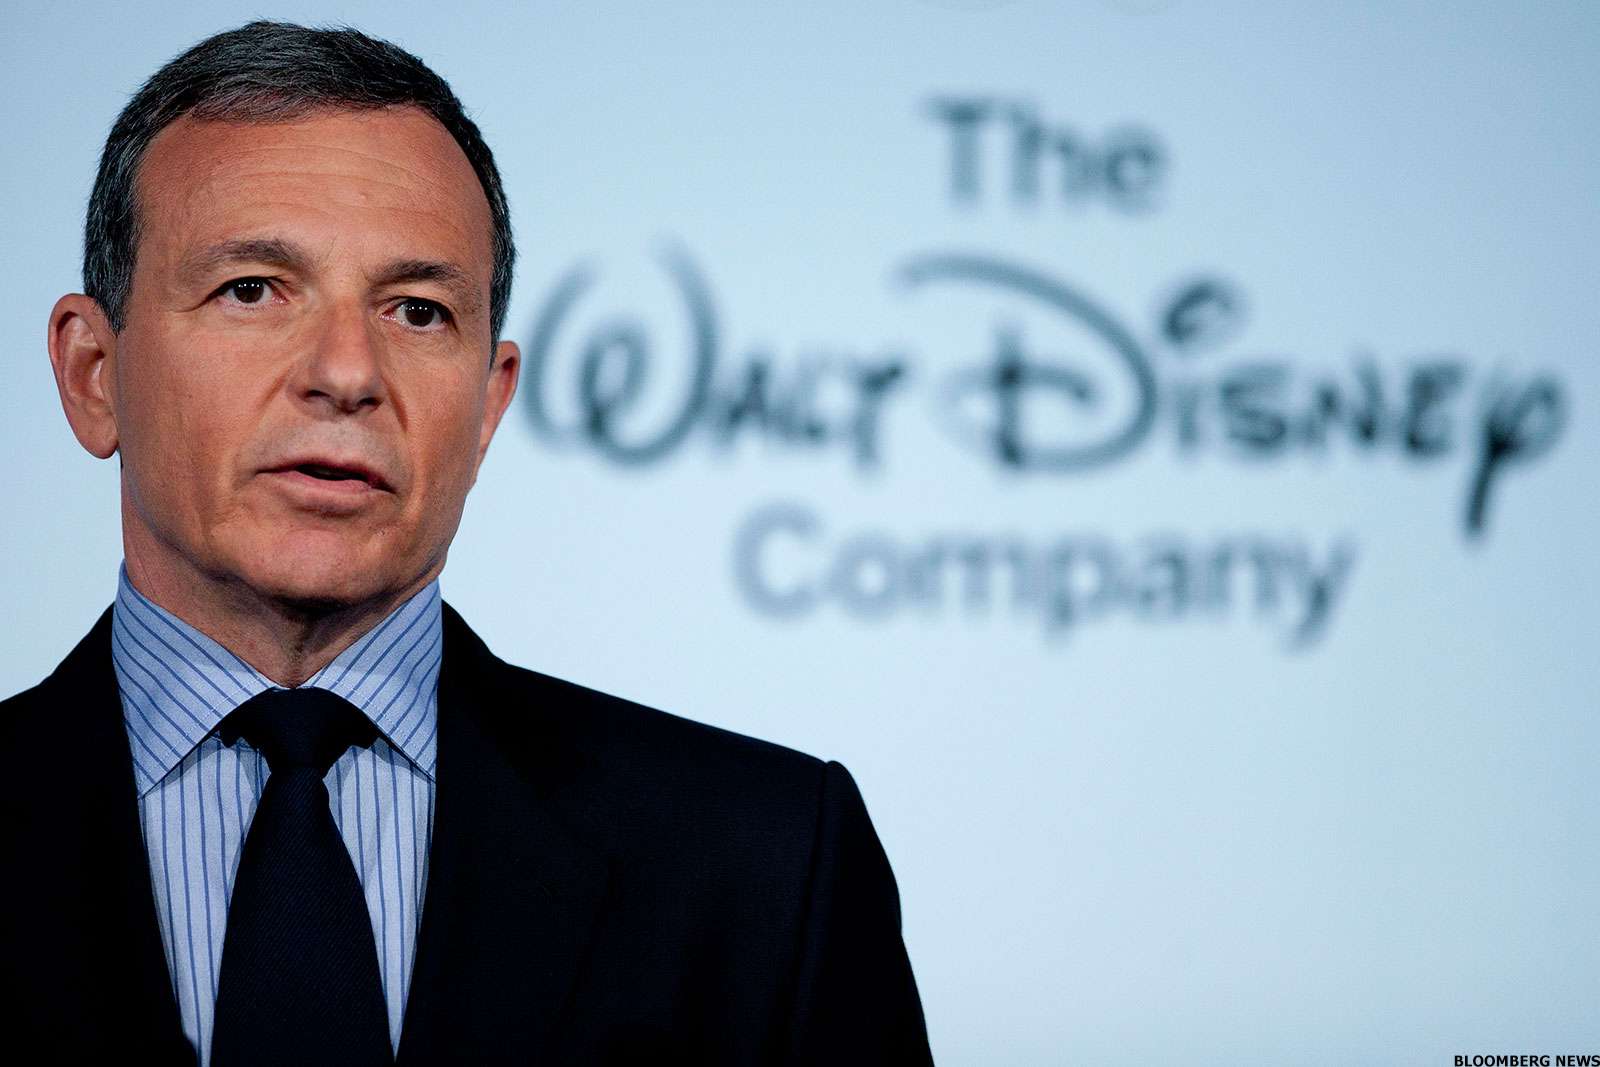 The Walt Disney Company Offers Concessions to European Commission For Fox Merger Approval